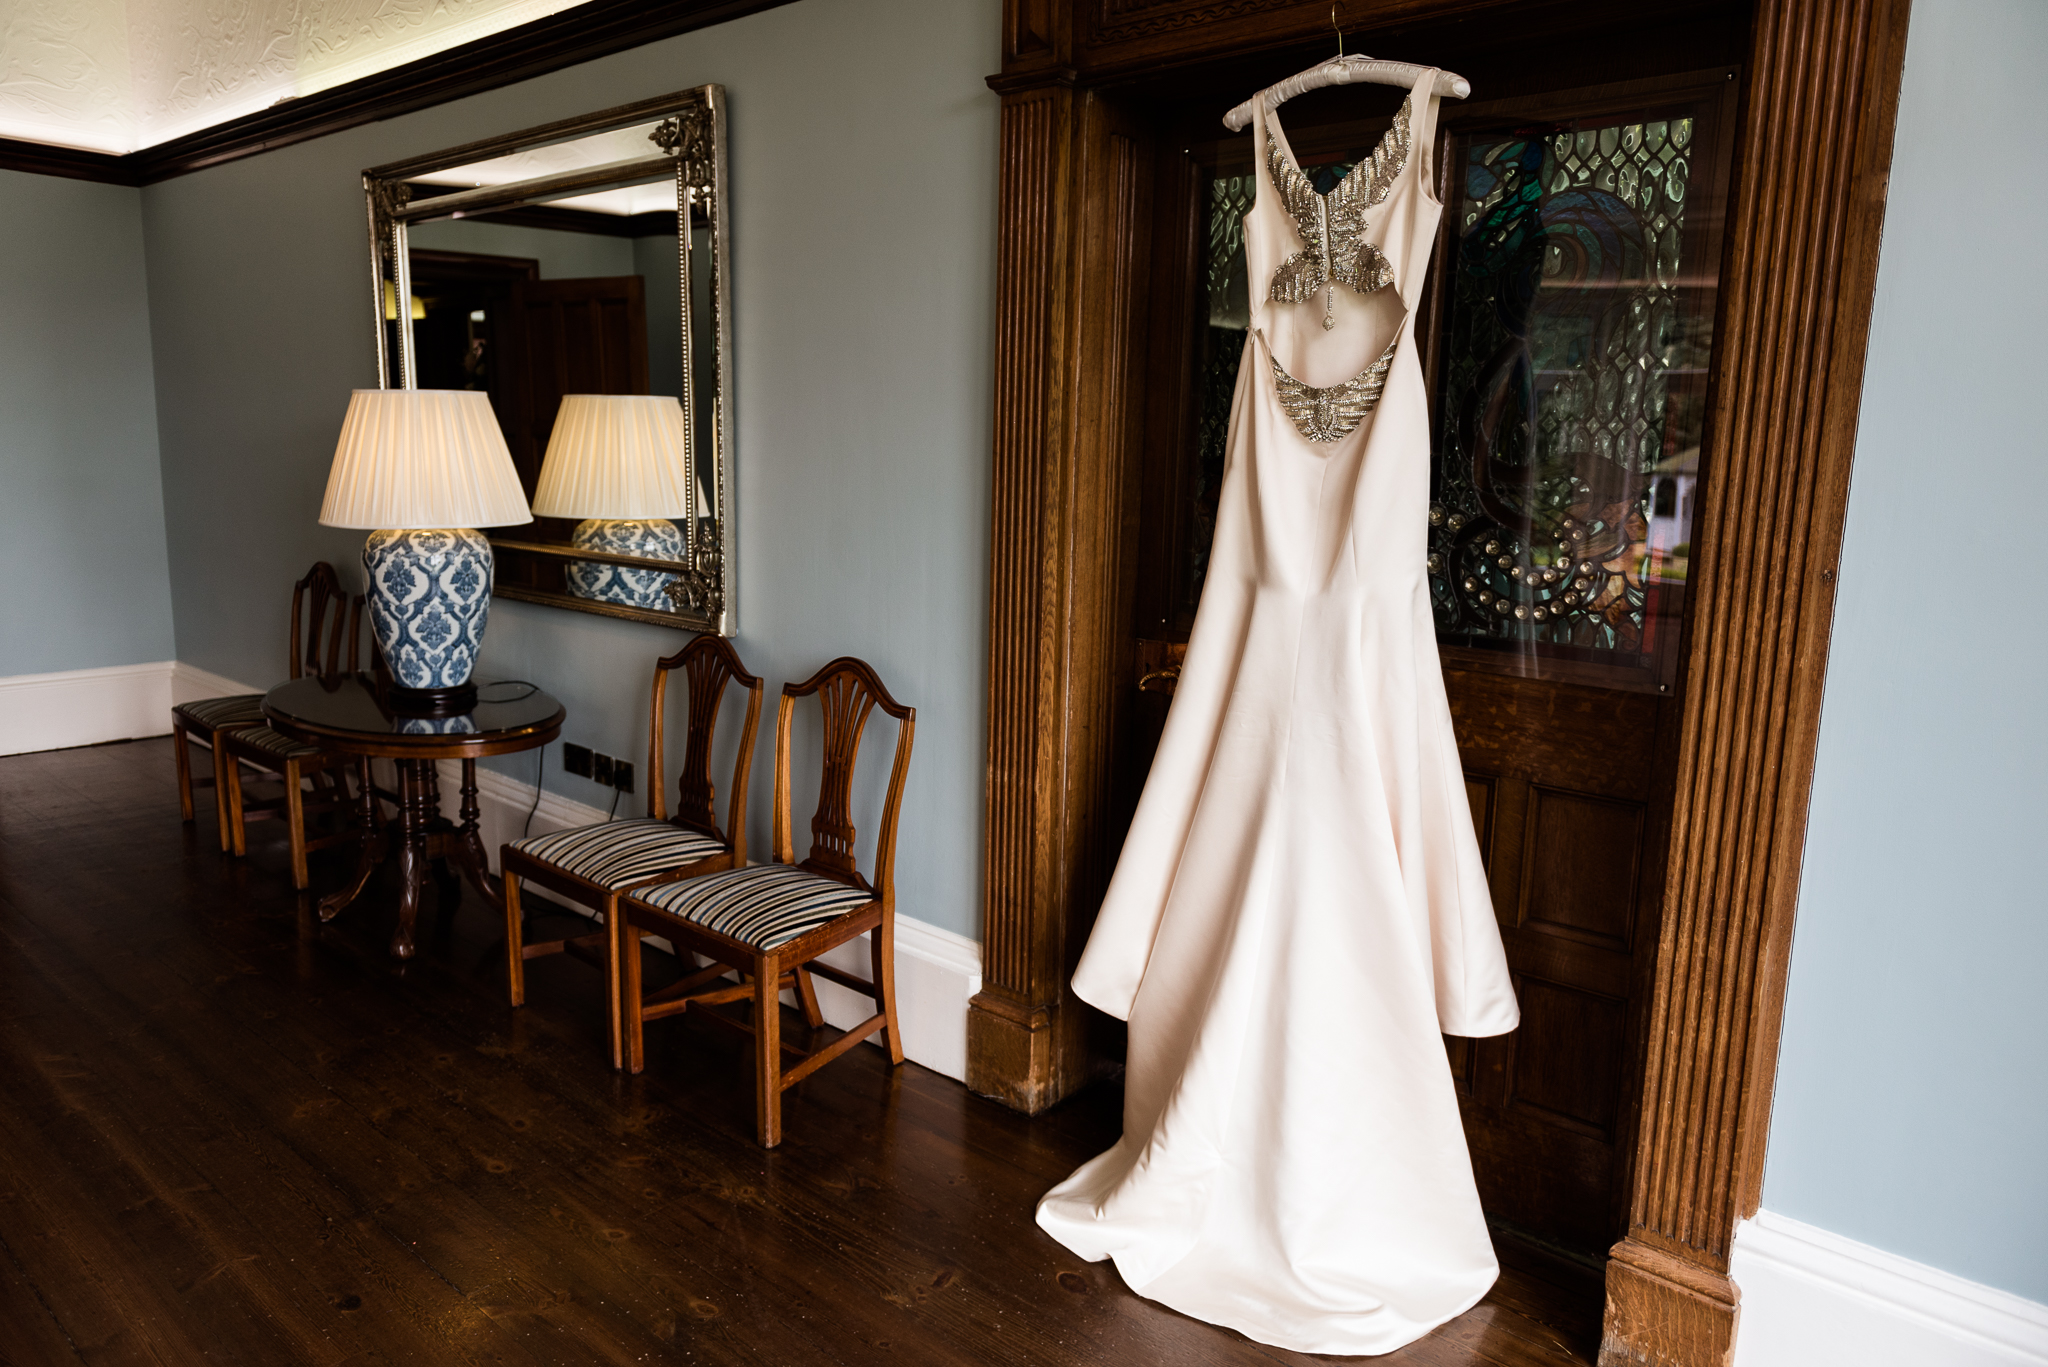 Stylish Easter Wedding at Pendrell Hall Country House Wedding Venue Staffordshire - Jenny Harper-4.jpg